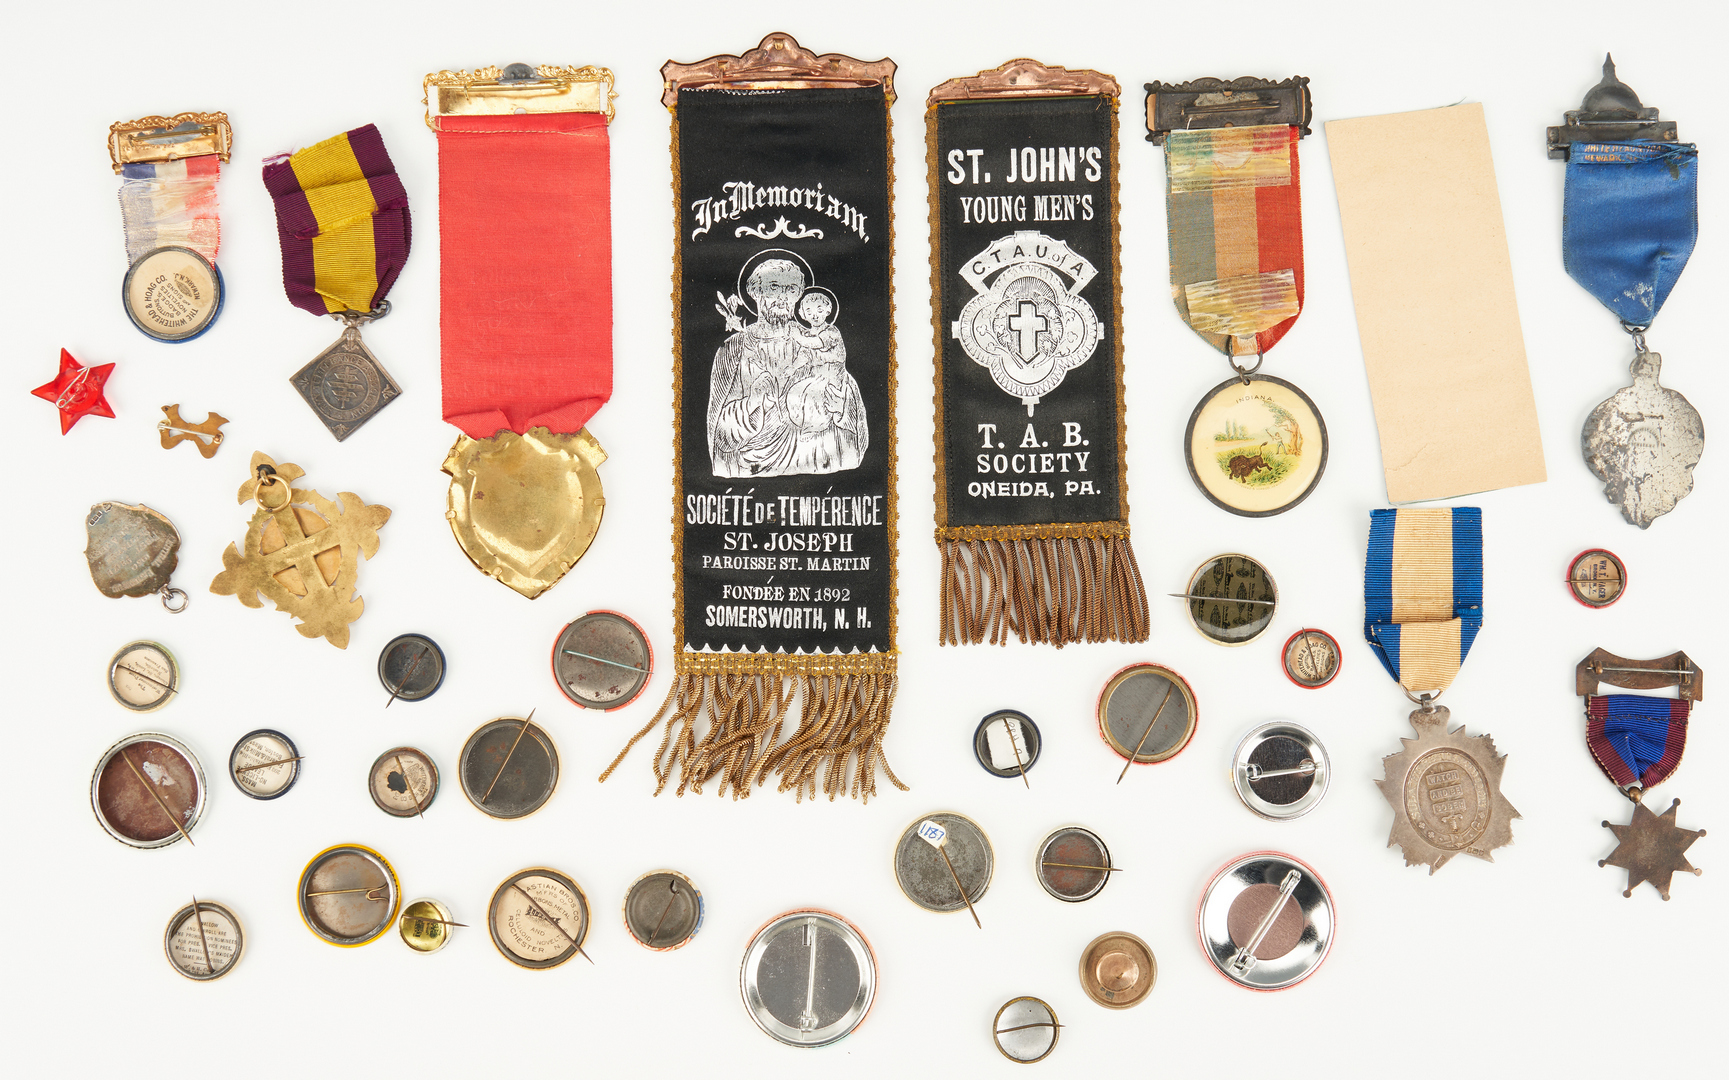 Lot 687: Group of Prohibition/Temperance Related Ephemera, incl. Campaign Buttons